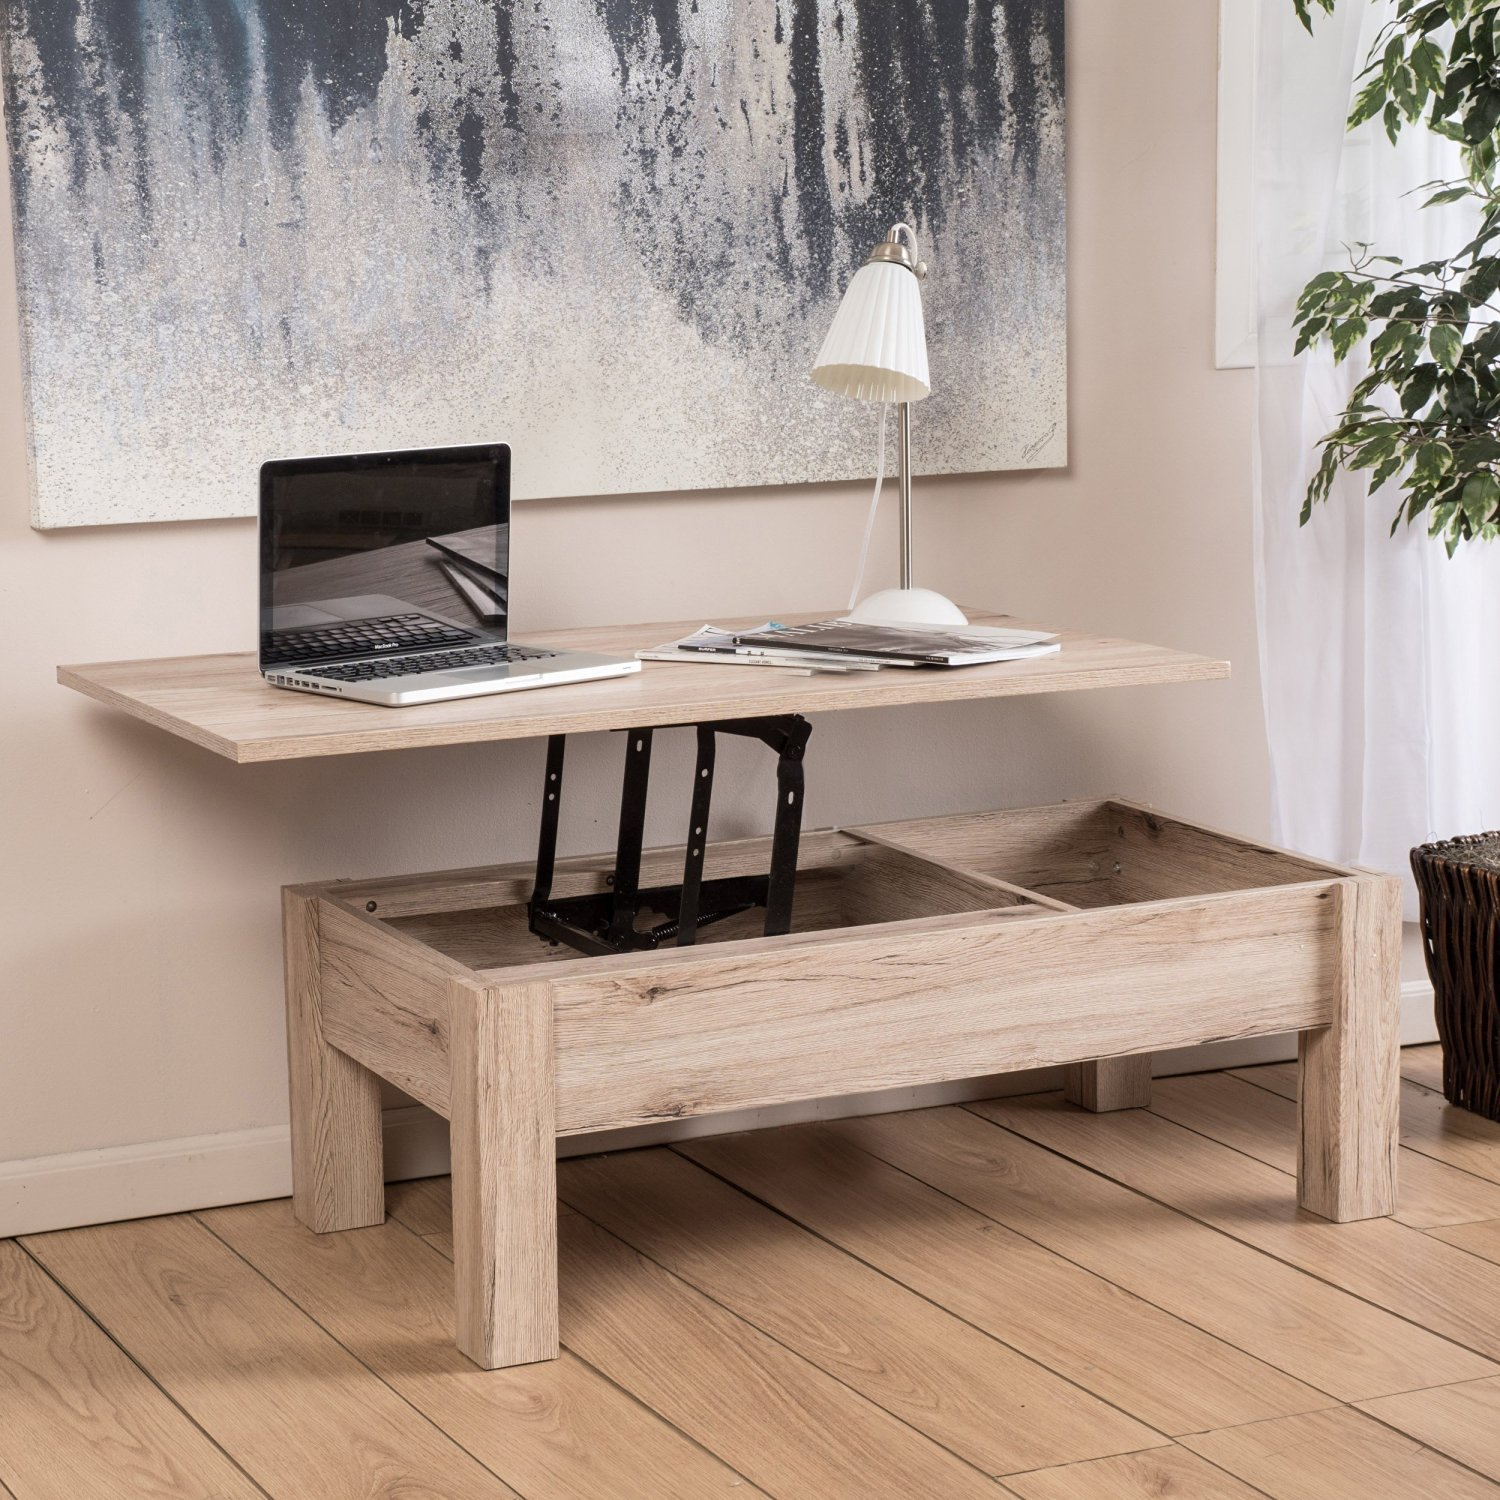 Desk With Lift Up Lid